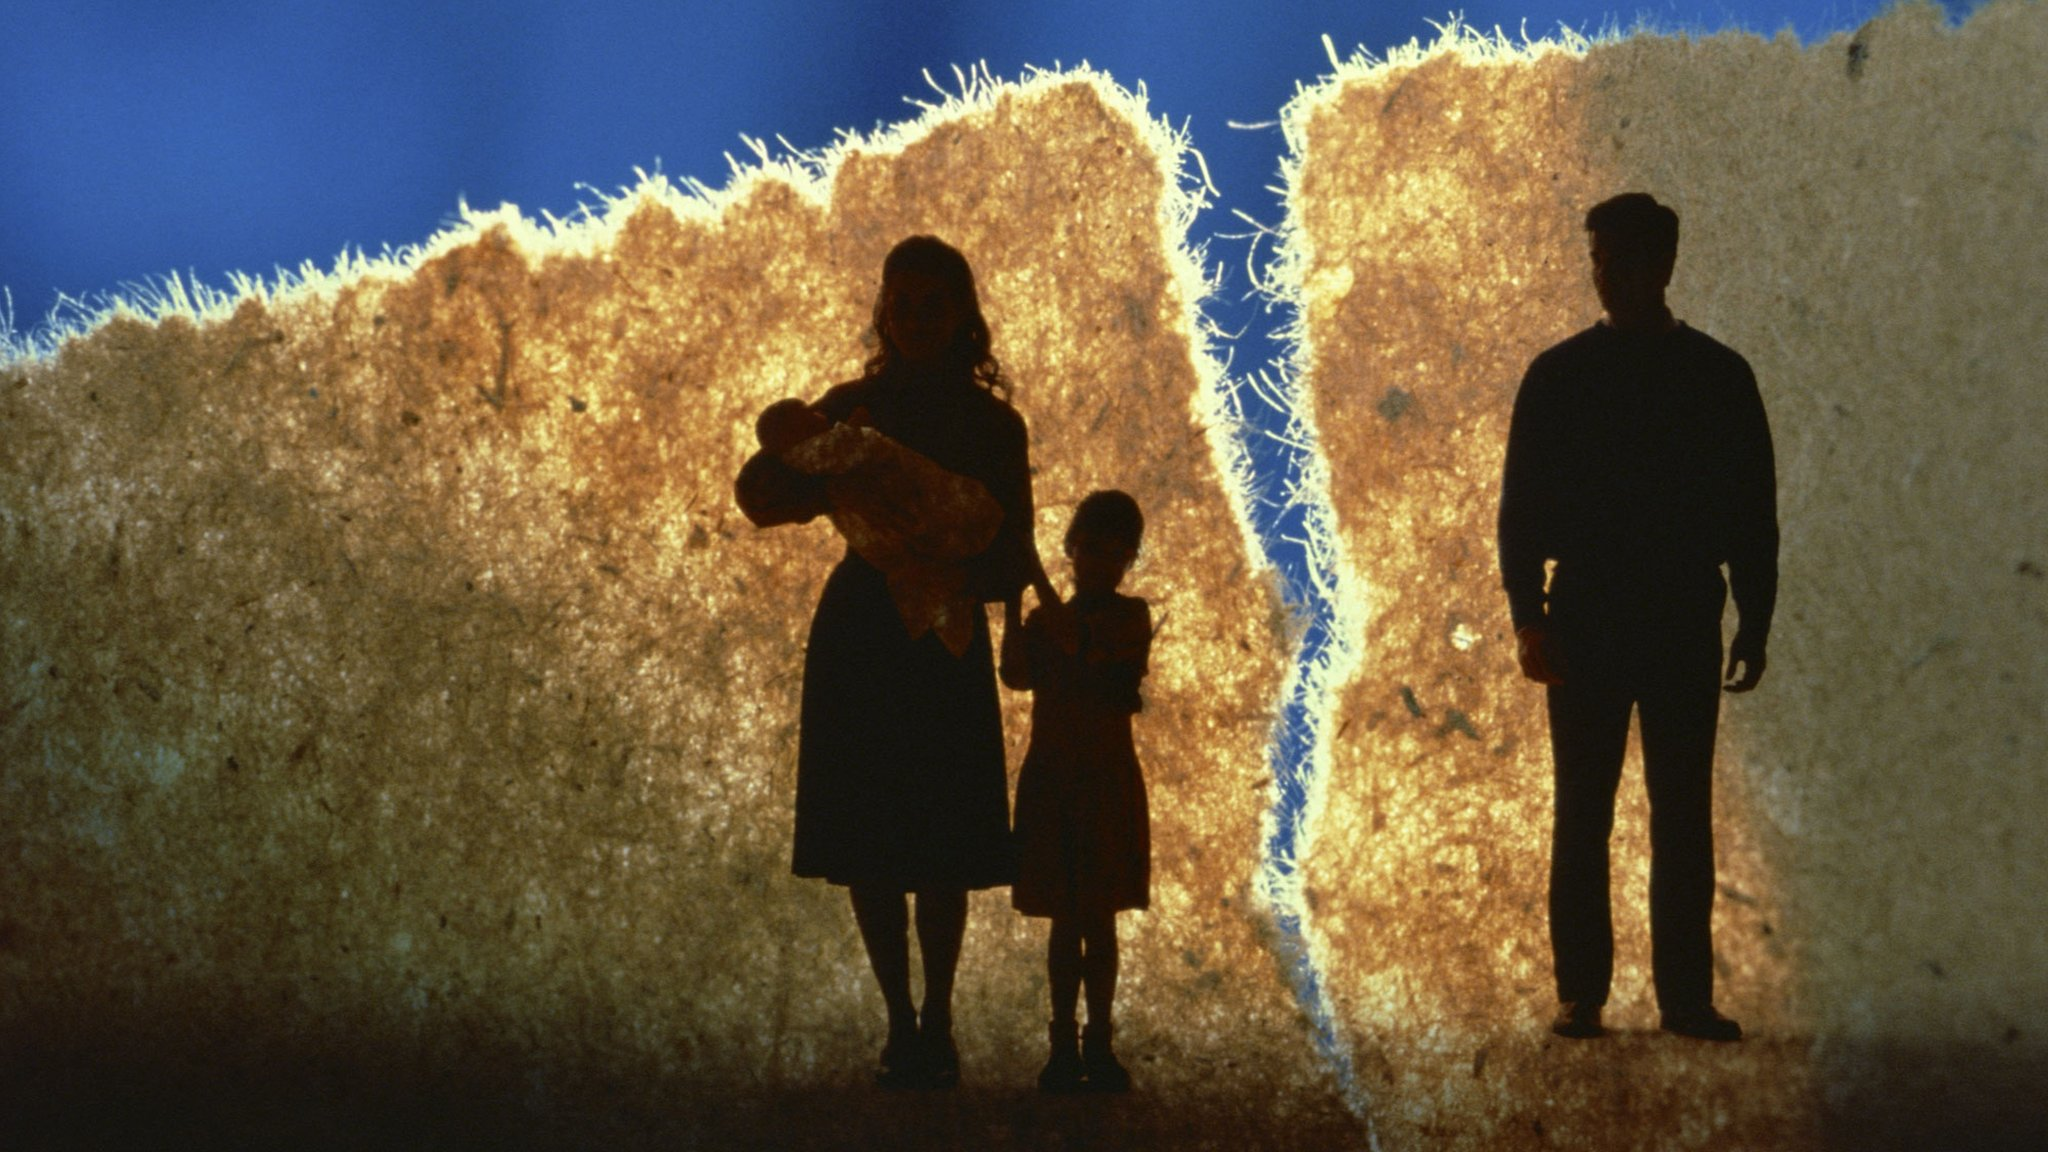 Silhouette of a split family